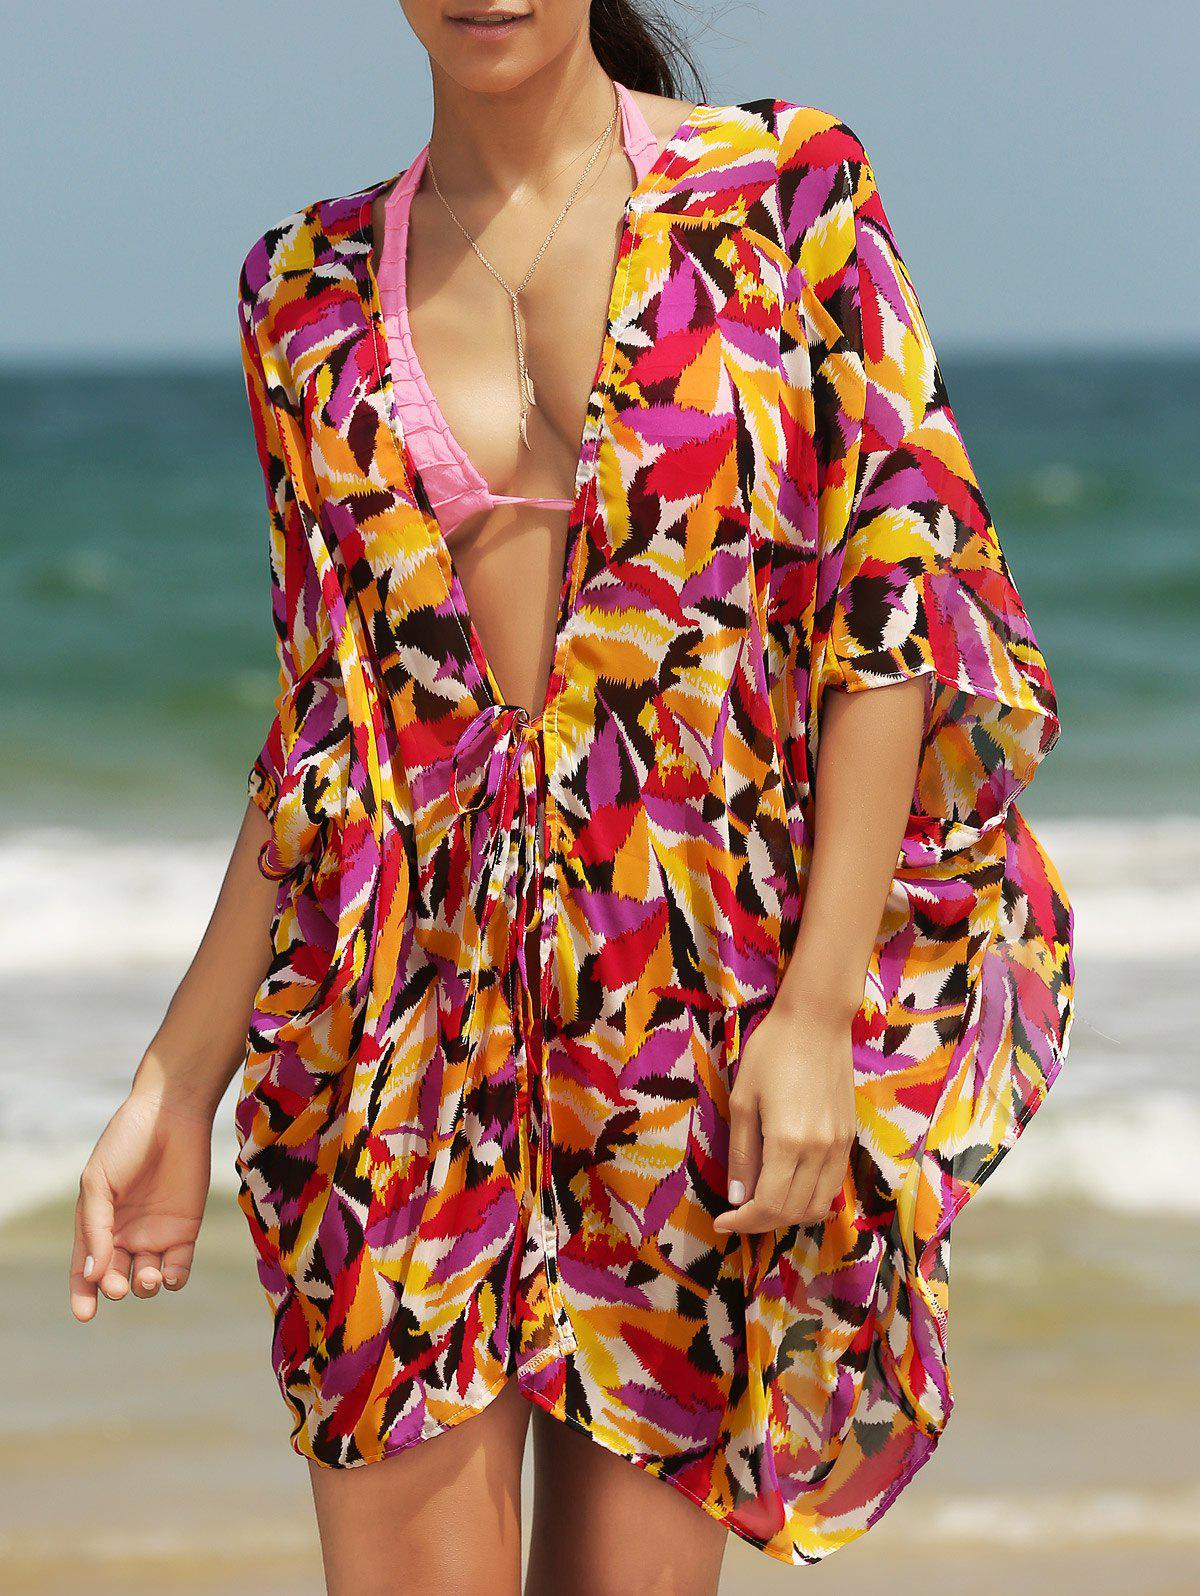 Chic Women's Plunging Neck Loose Print Cover Up - COLORMIX ONE SIZE(FIT SIZE XS TO M)